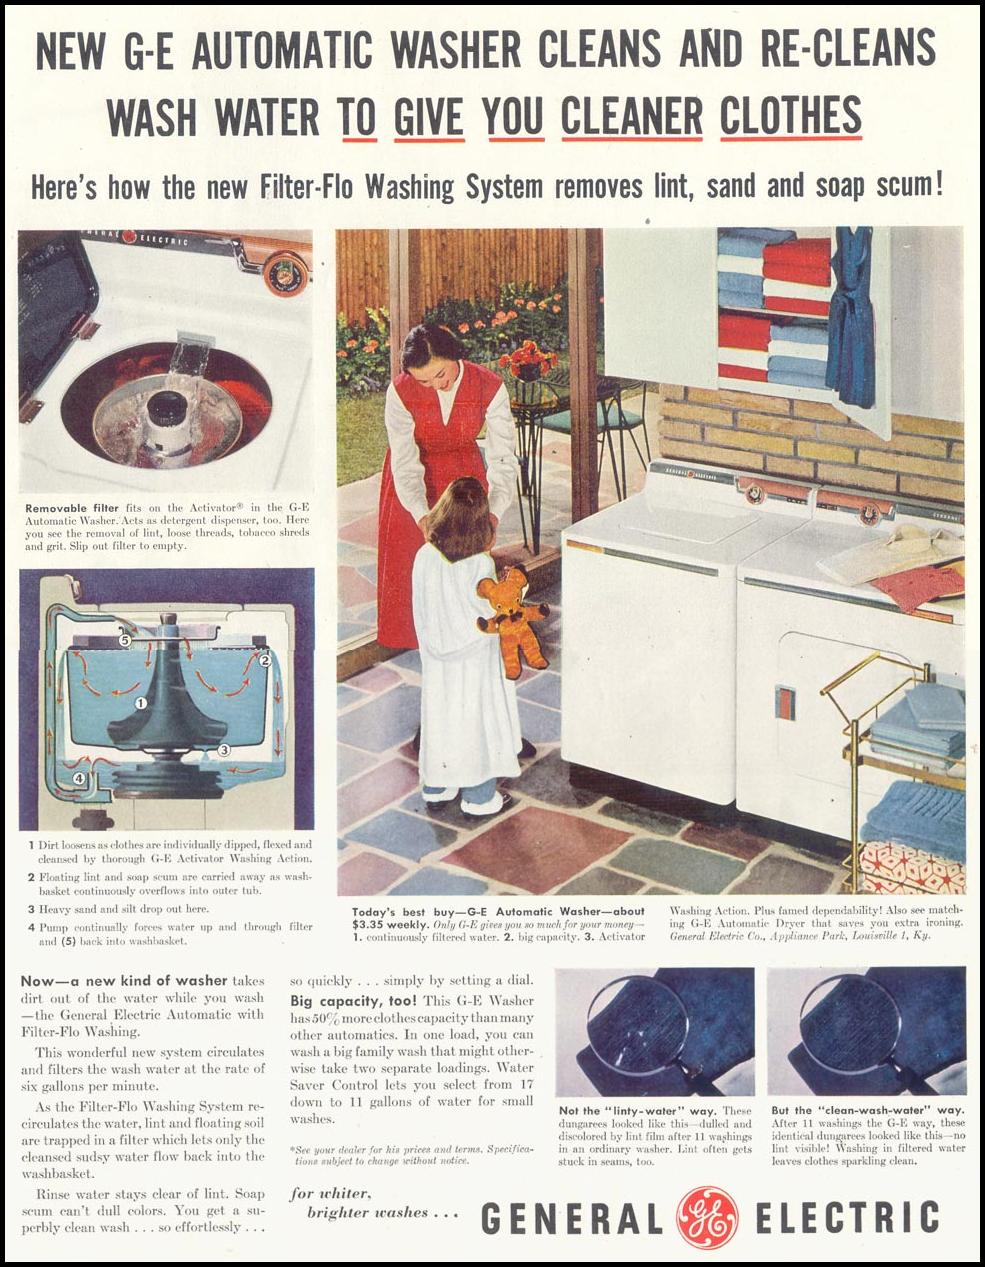 GENERAL ELECTRIC AUTOMATIC WASHER SATURDAY EVENING POST 02/05/1955